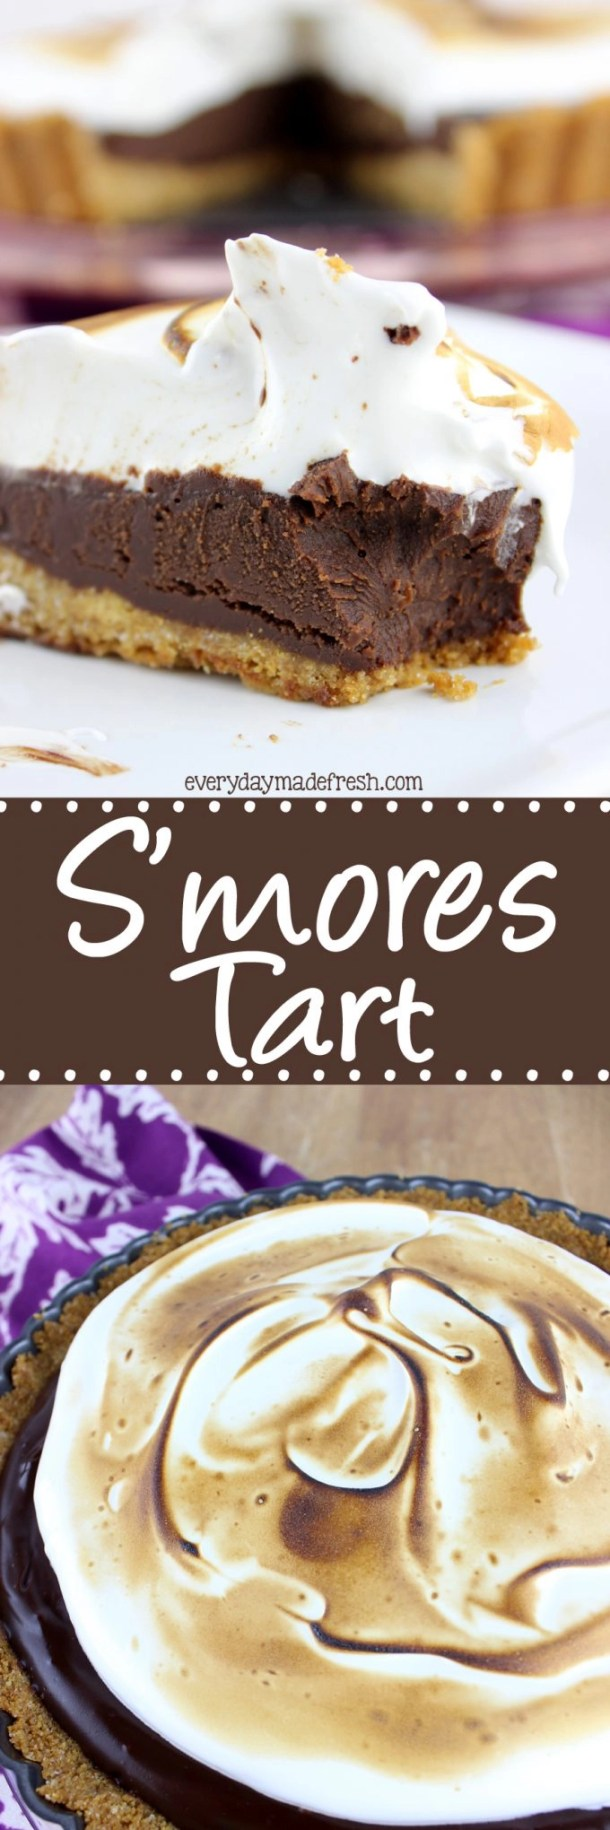 Enjoy the flavors of s'mores year round, and without a camp fire with this rich and decadent no bake S'mores Tart. | EverydayMadeFresh.com